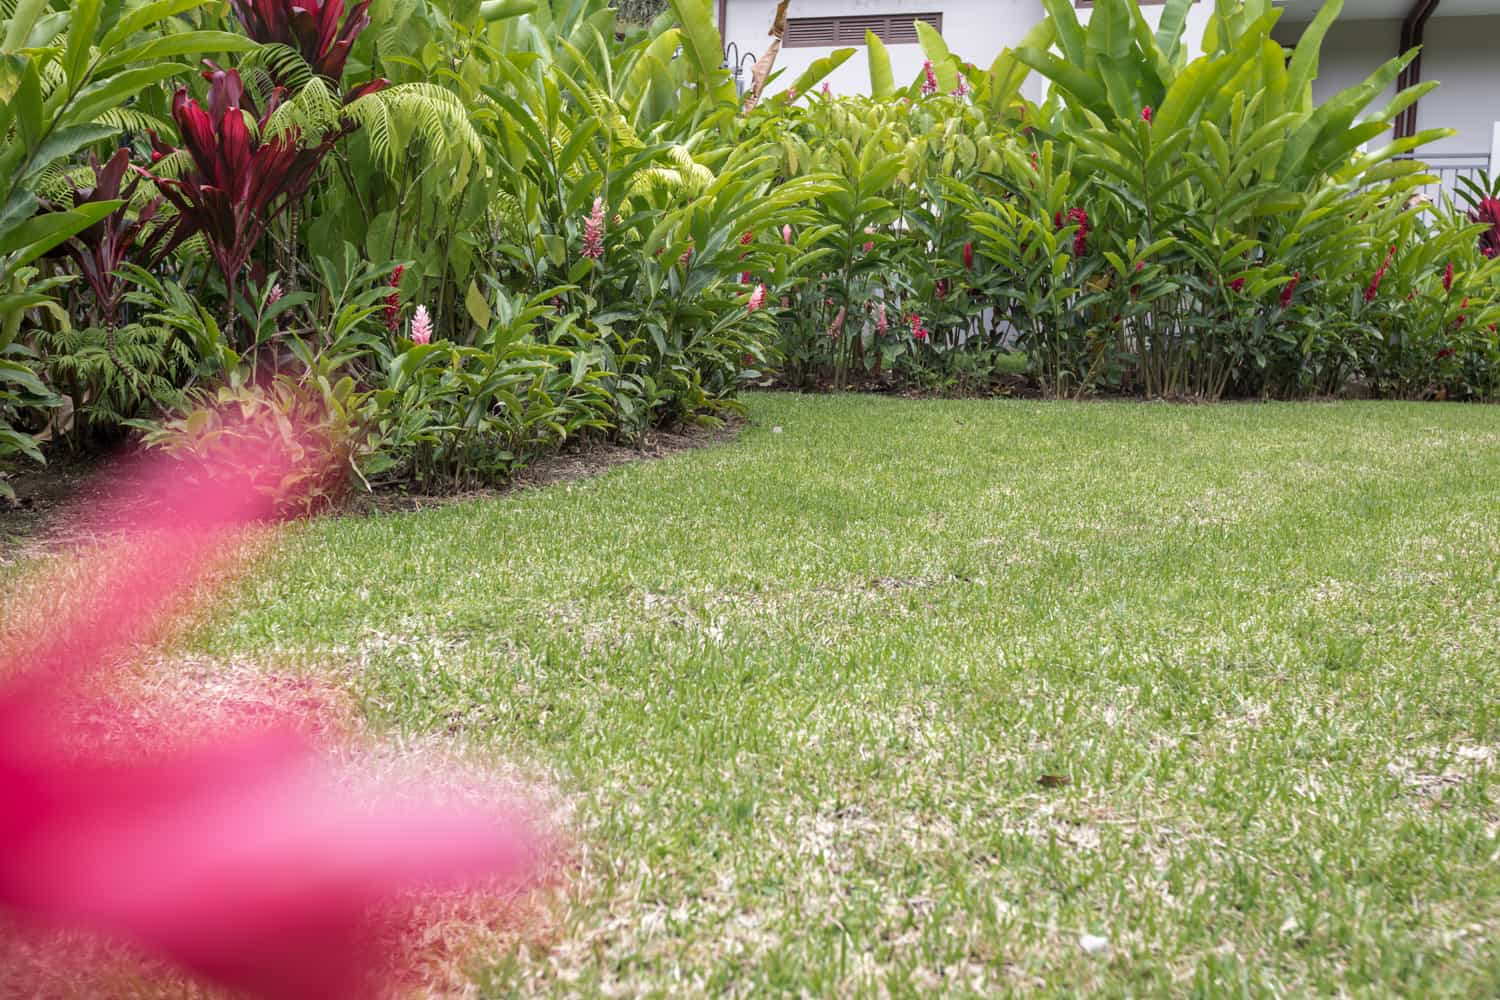 Lawn area for large weddings with flowers and rainforest along sides.